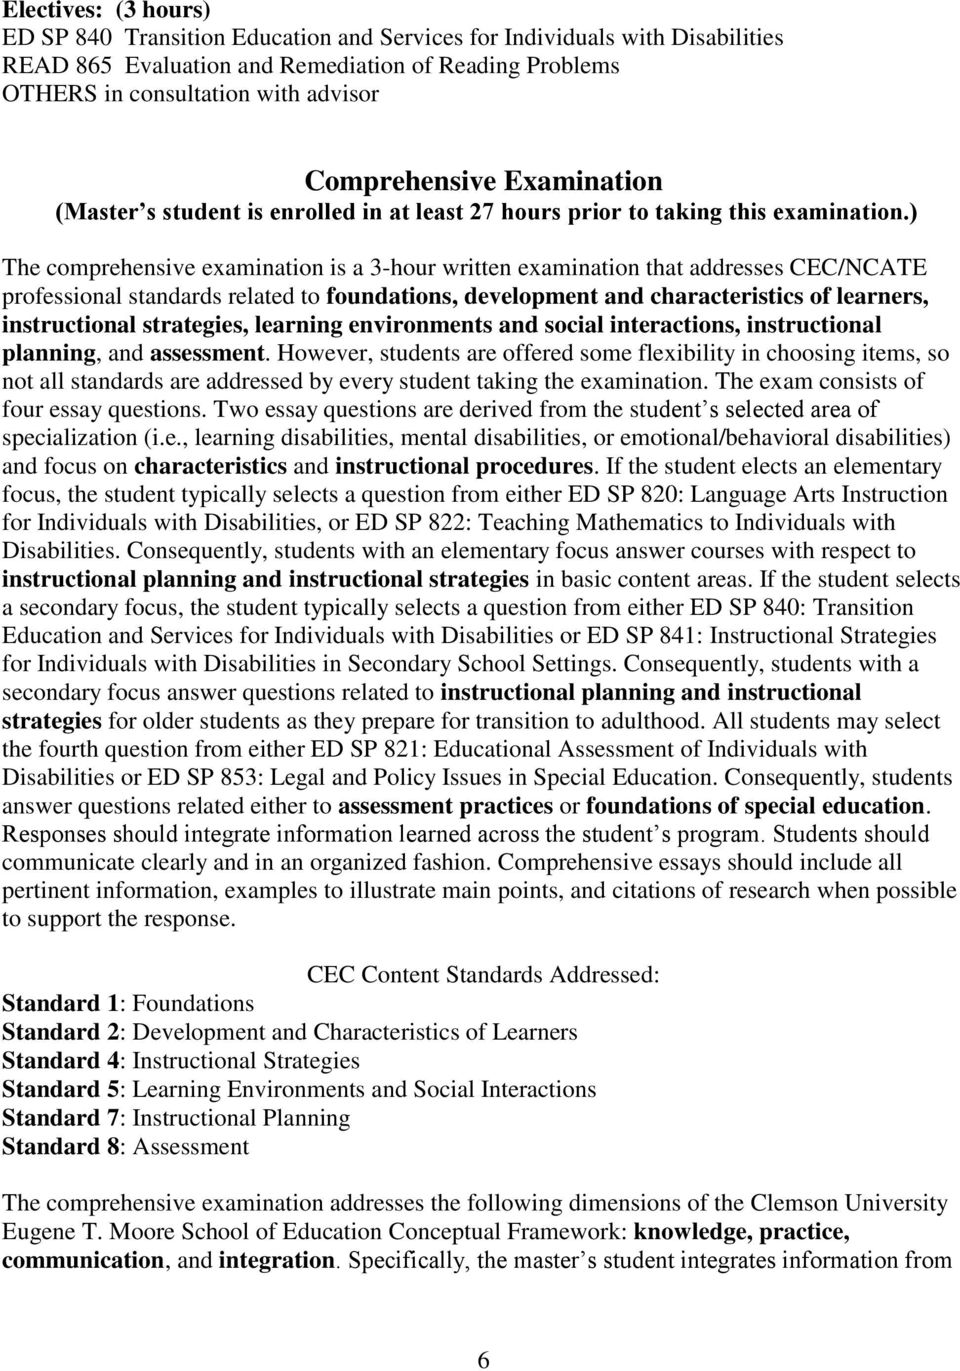 ) The comprehensive examination is a 3-hour written examination that addresses CEC/NCATE professional standards related to foundations, development and characteristics of learners, instructional